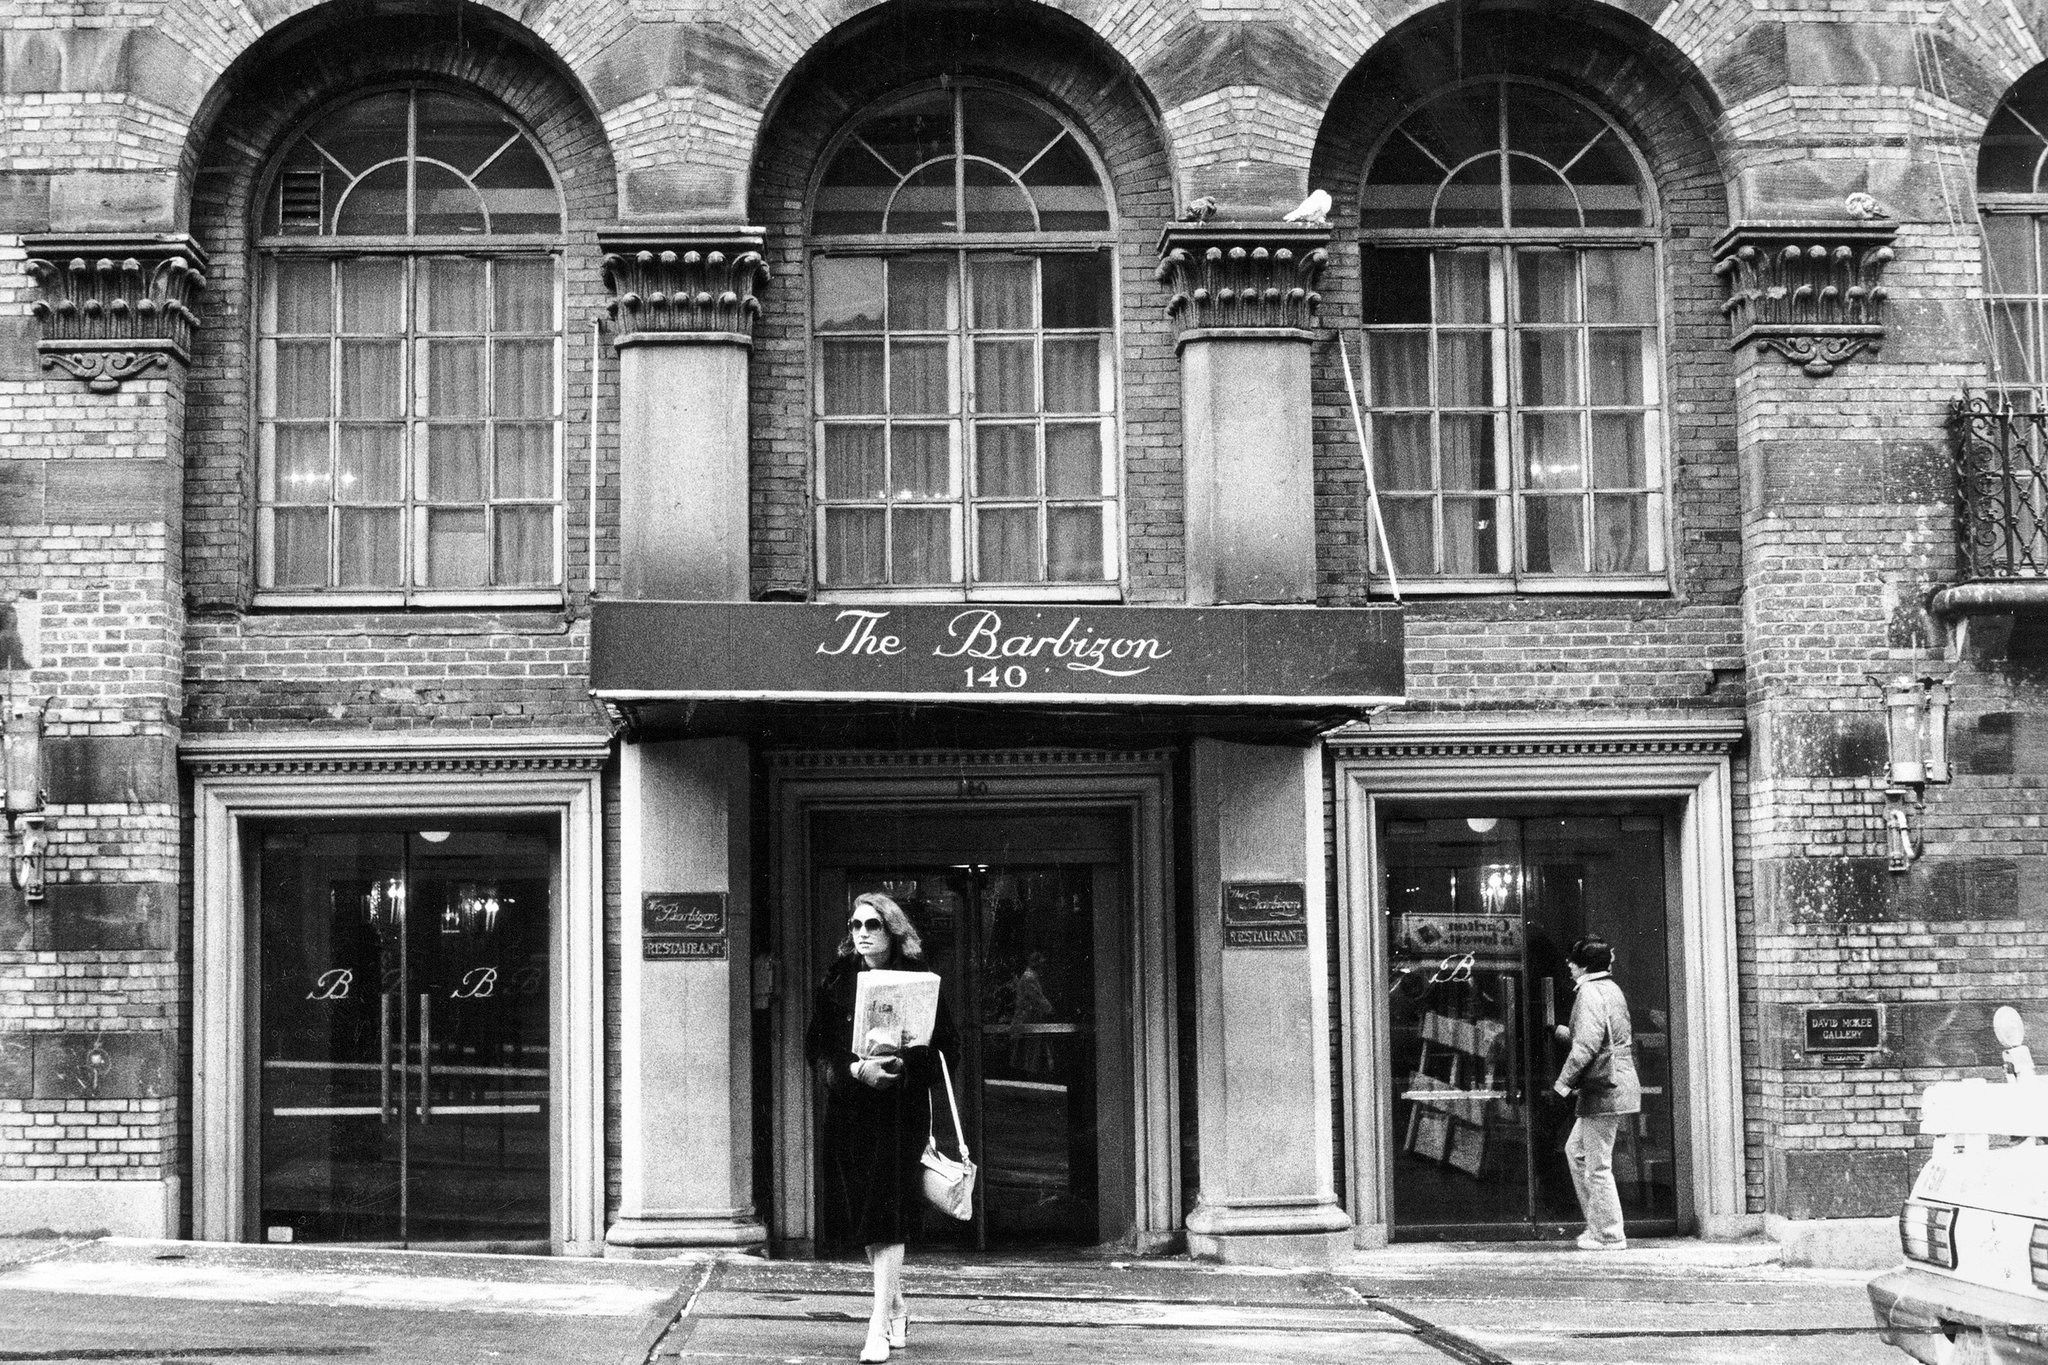 A Historical Look at the Barbizon Hotel for Women